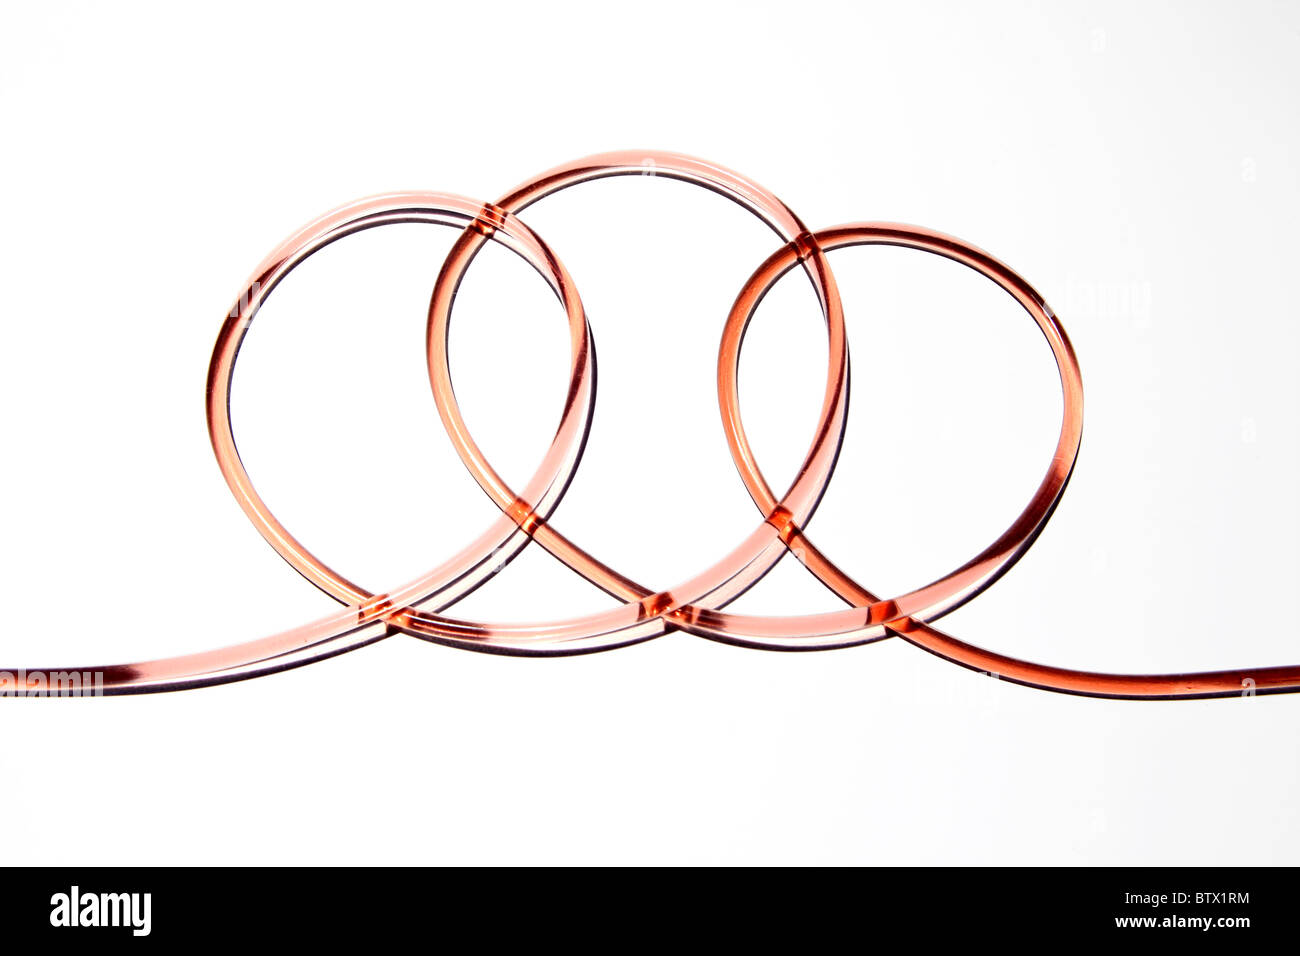 Clear rubber medical tubing with blood flowing through. Tubing is looped and twisted on itself. - Stock Image